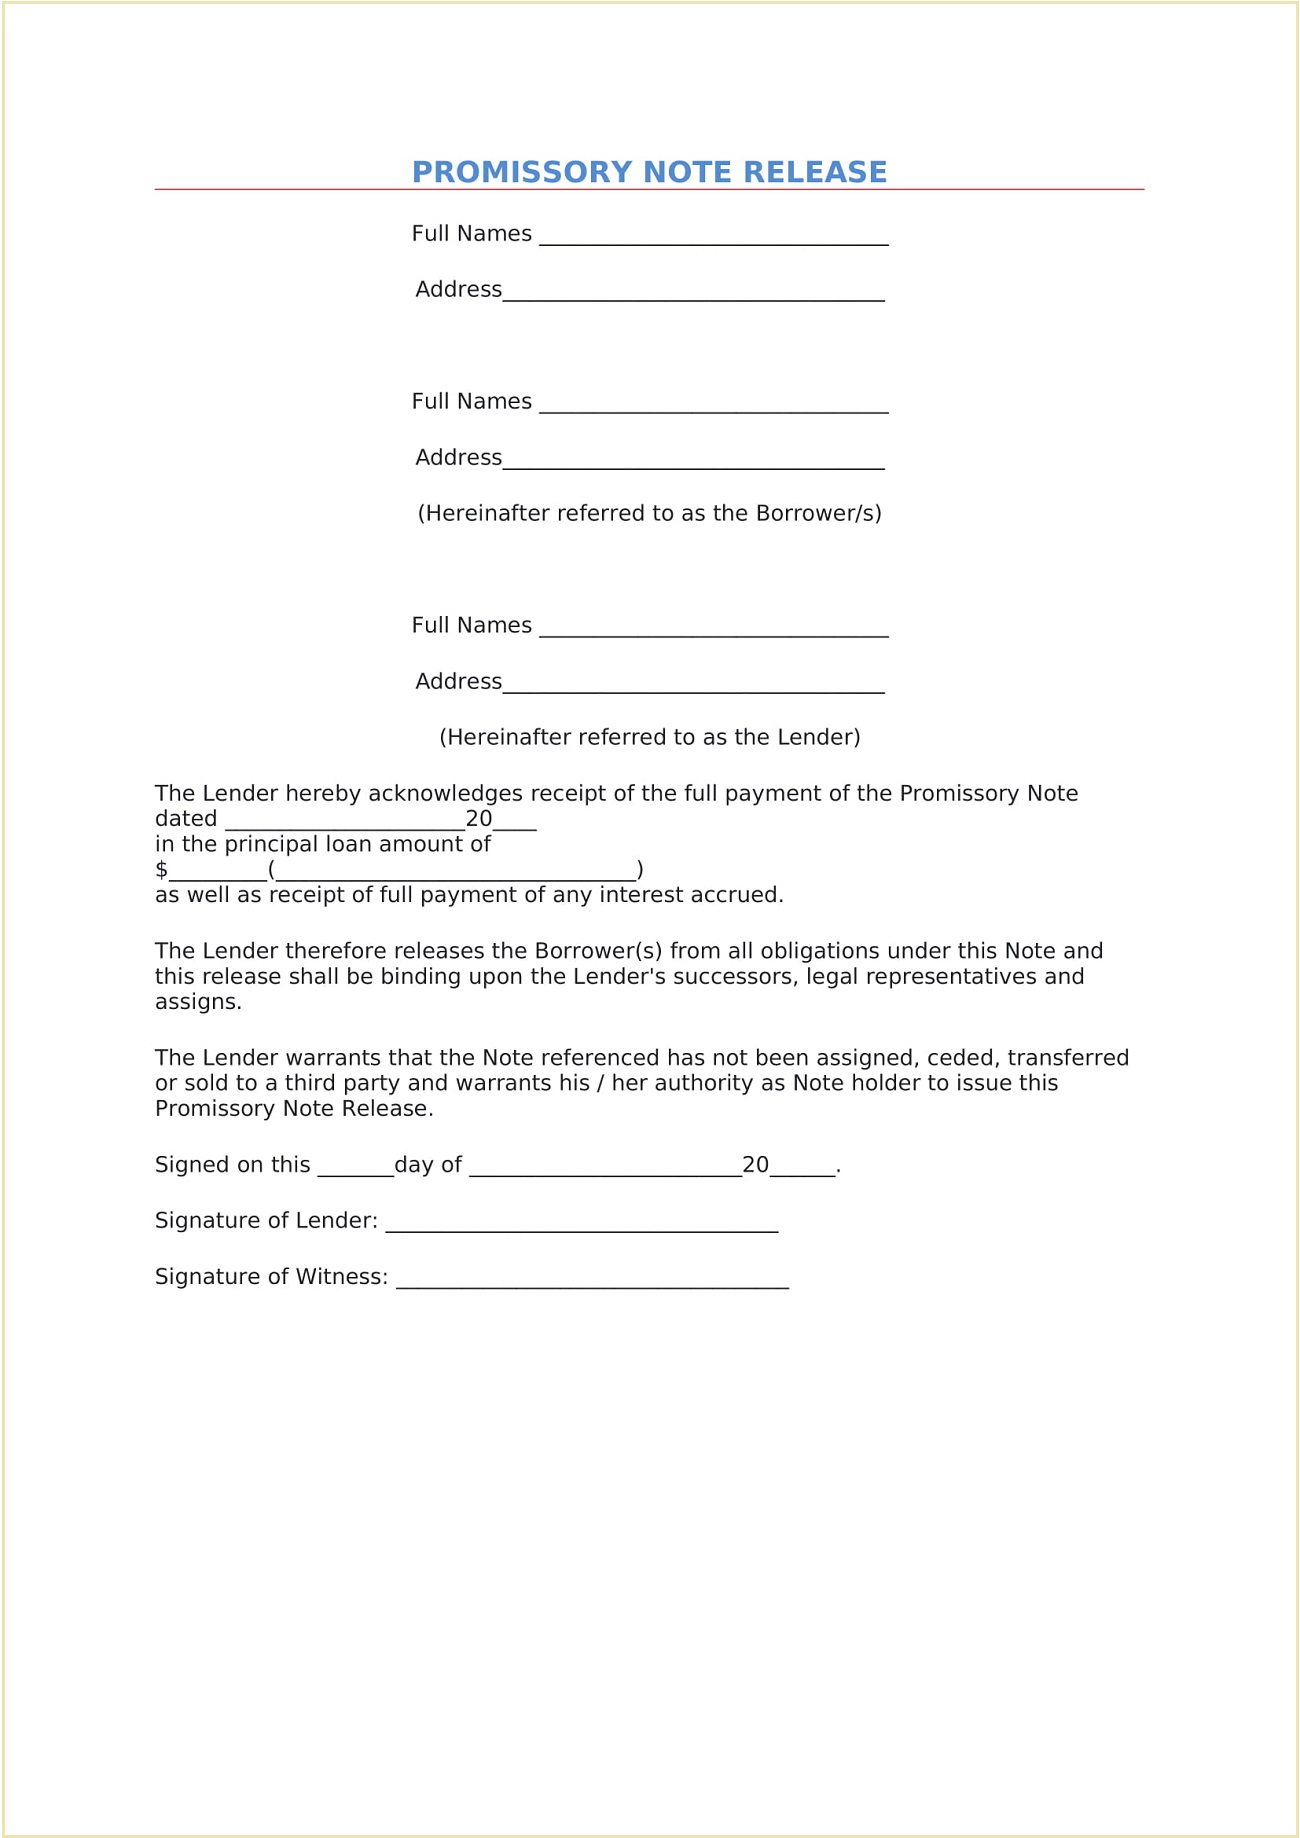 Promissory Note Release Template Word